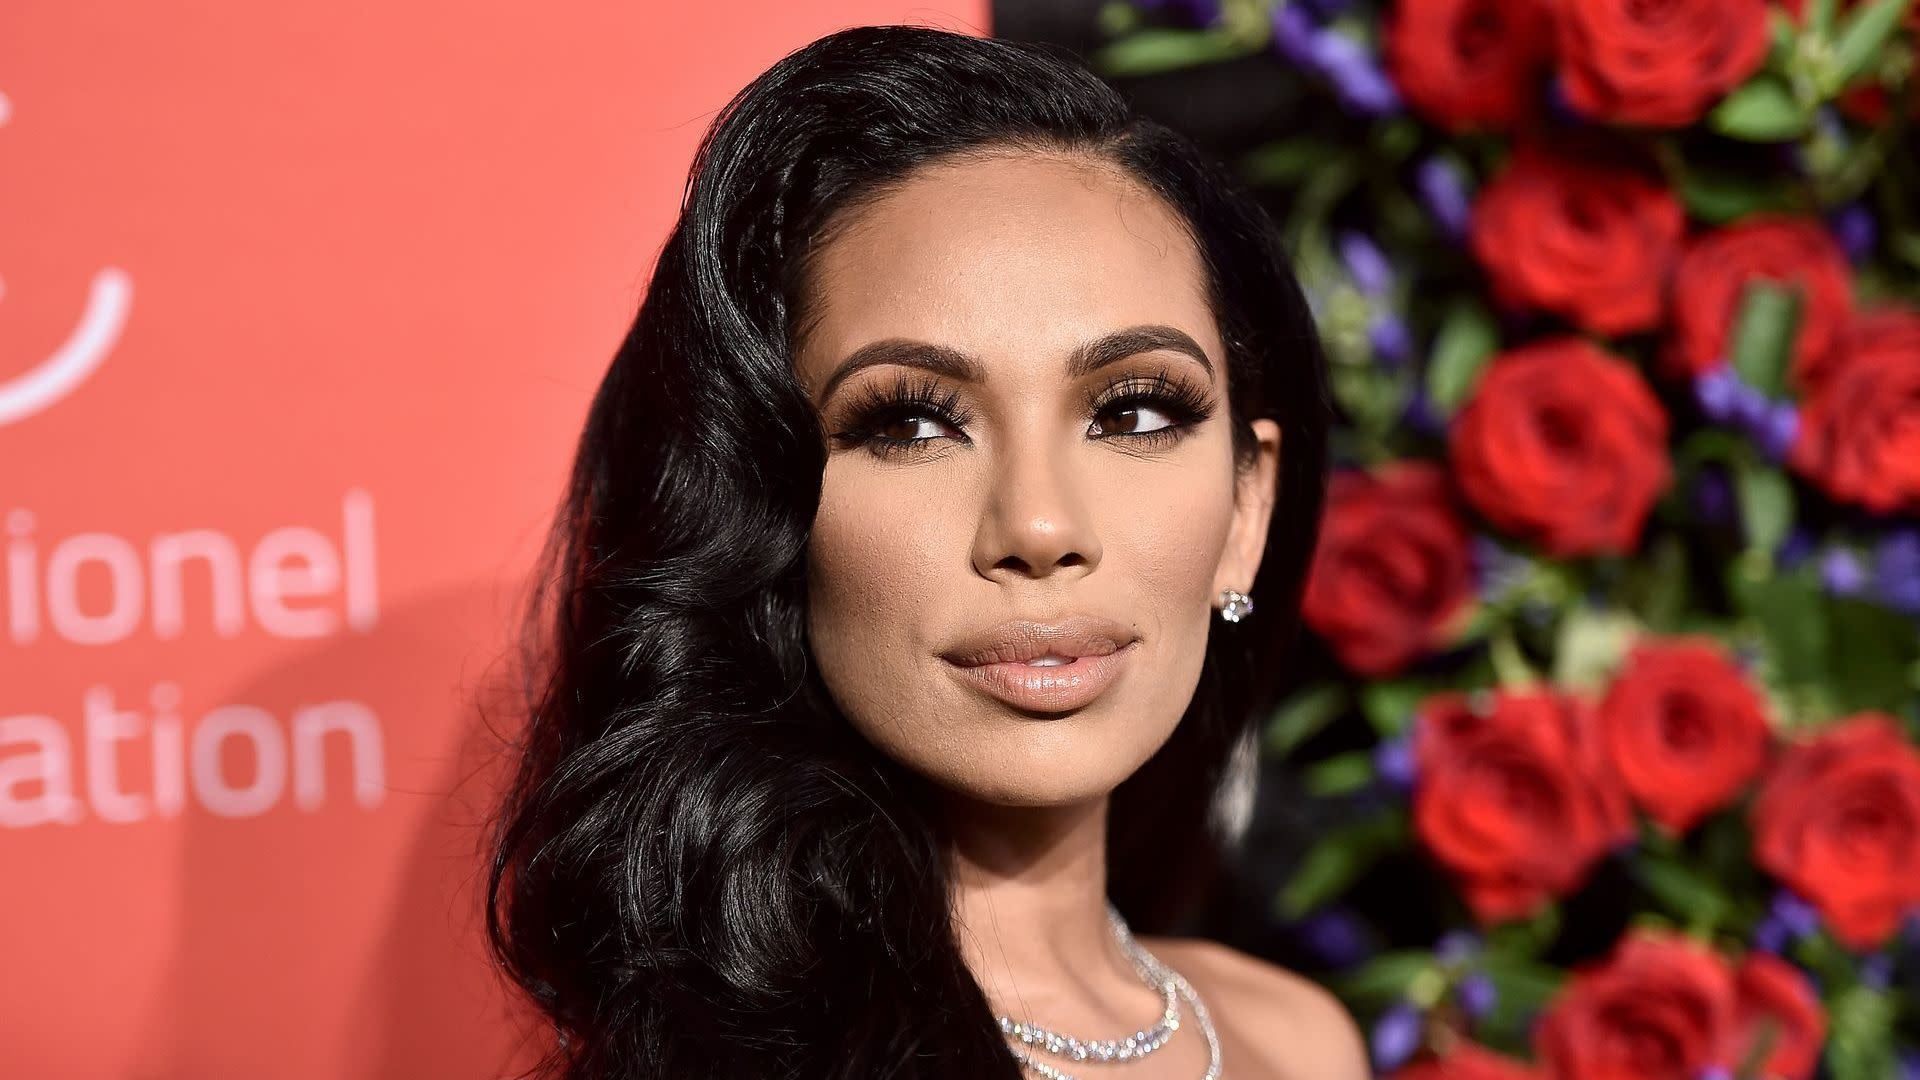 erica-mena-breaks-the-internet-with-her-curves-and-fans-say-safaree-is-out-there-somewhere-punching-the-air